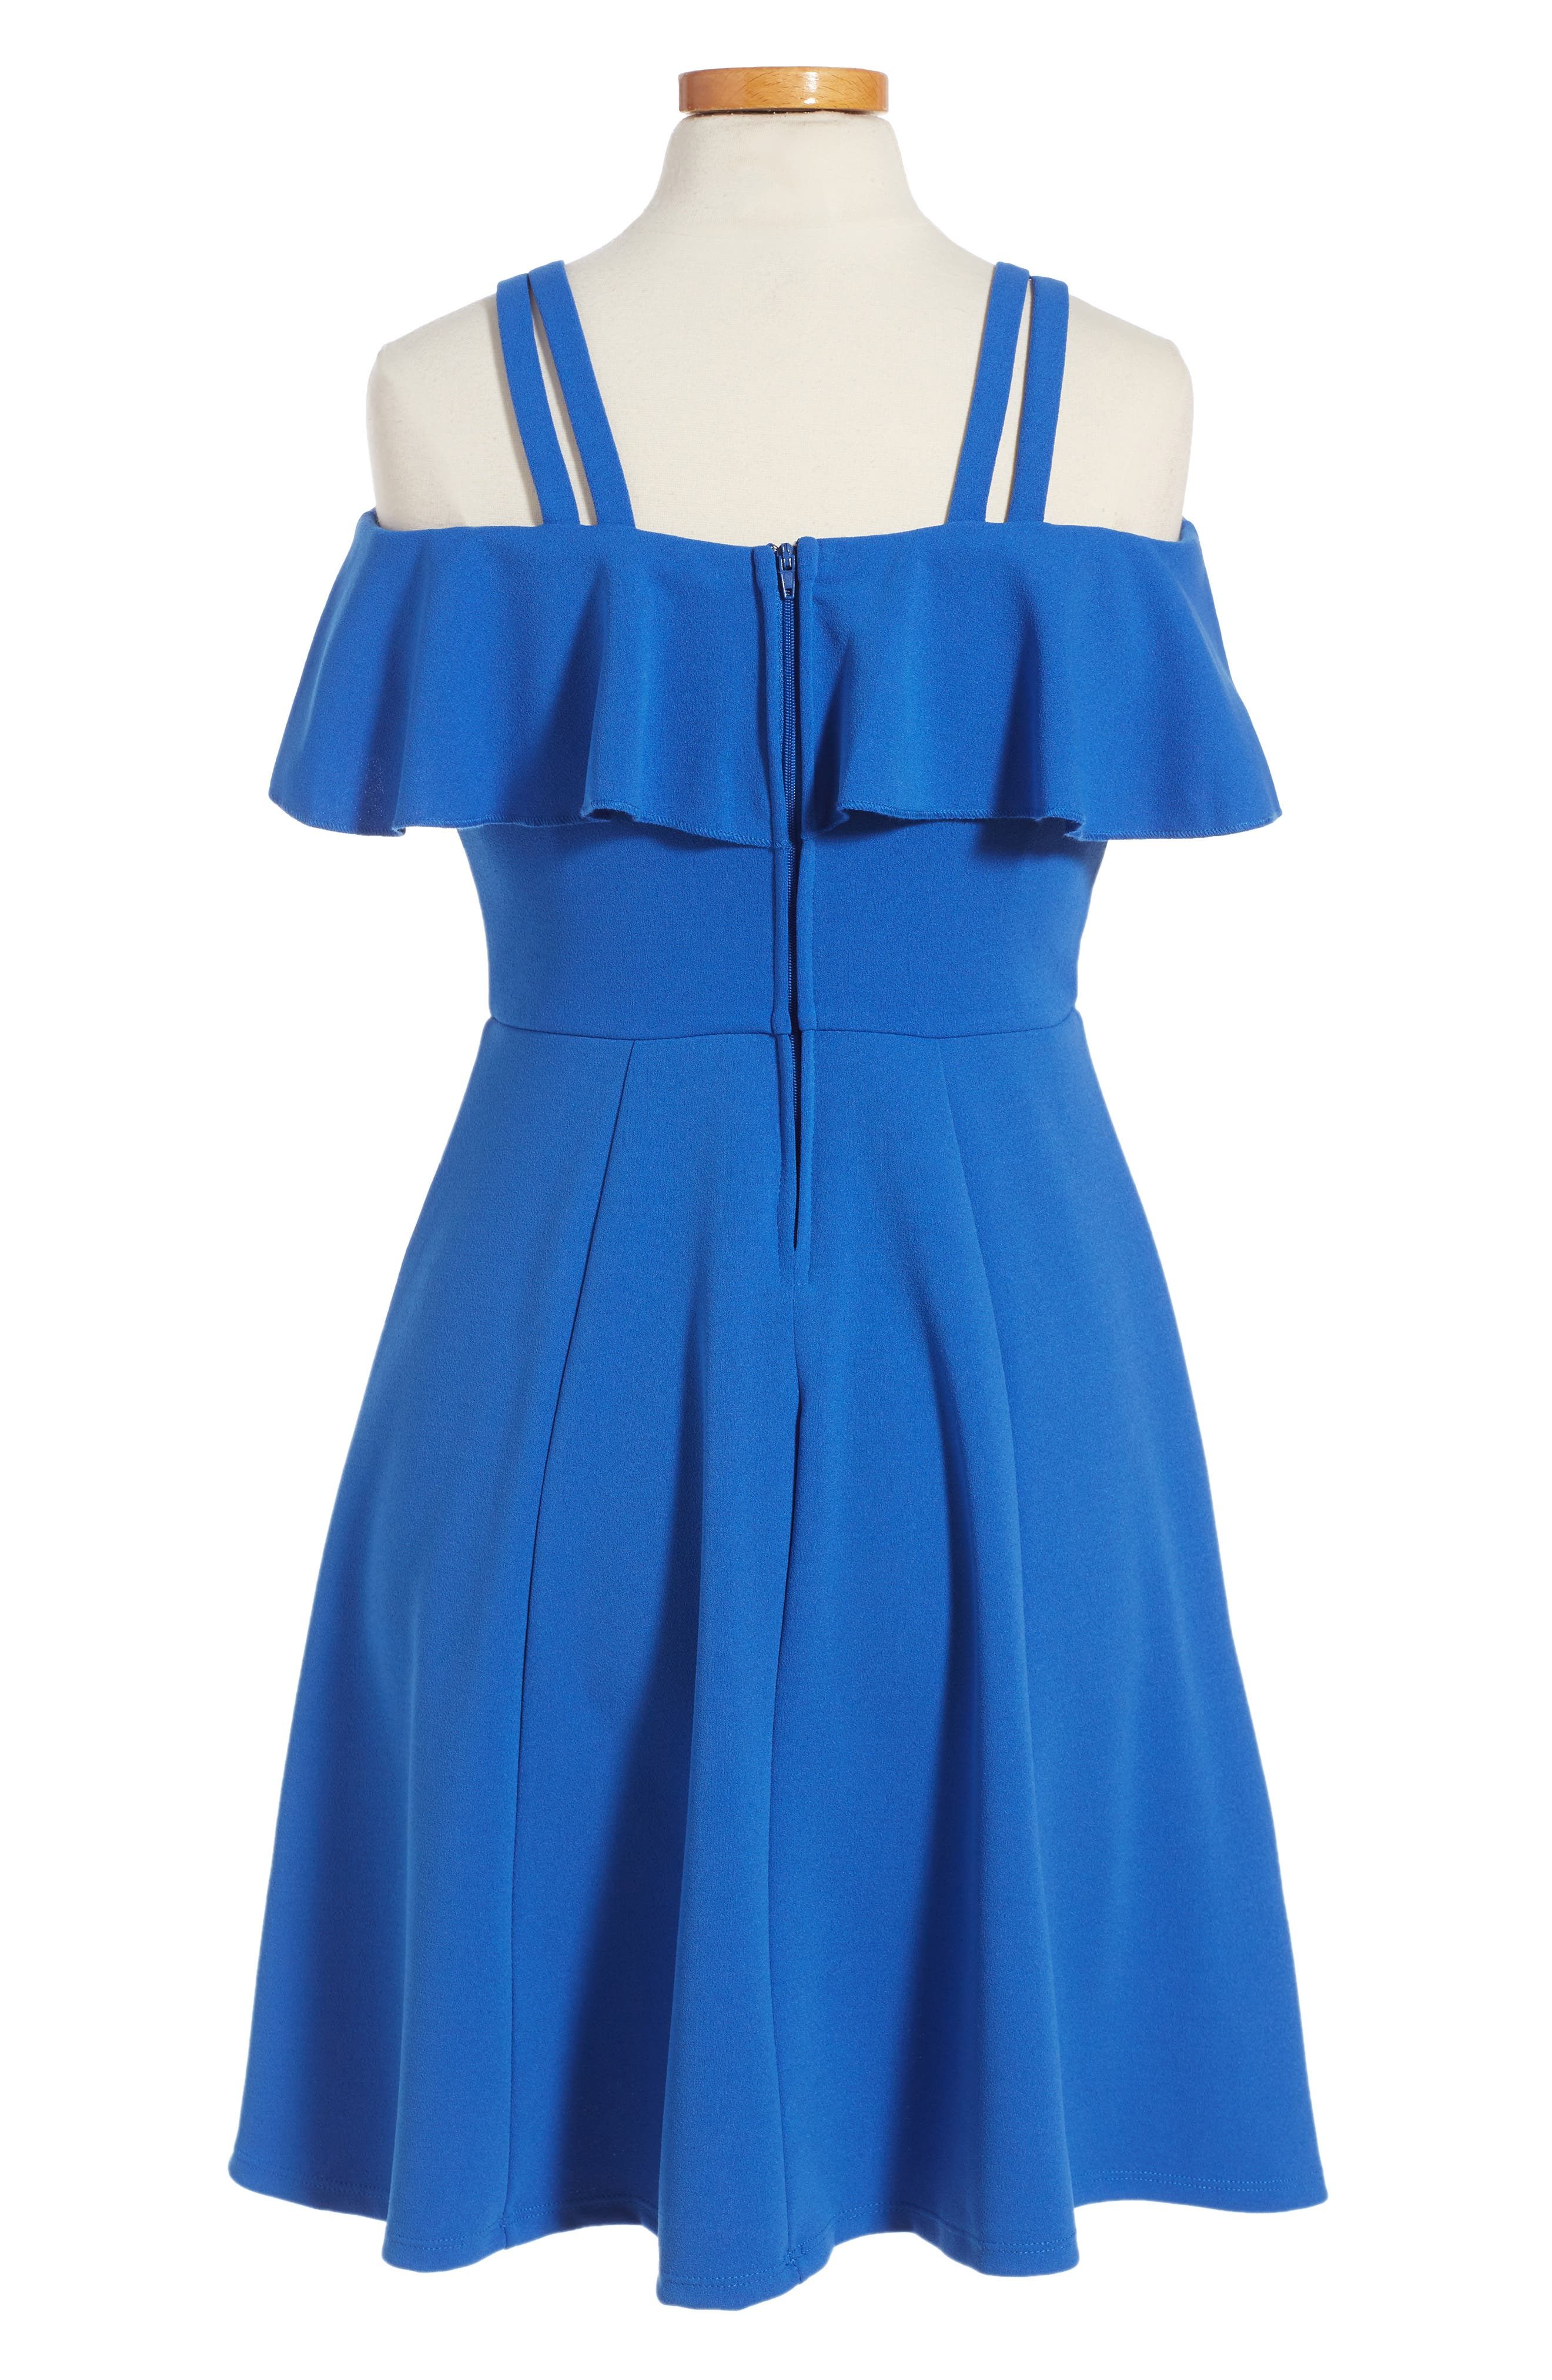 Off the Shoulder Ruffle Dress,                             Main thumbnail 1, color,                             420